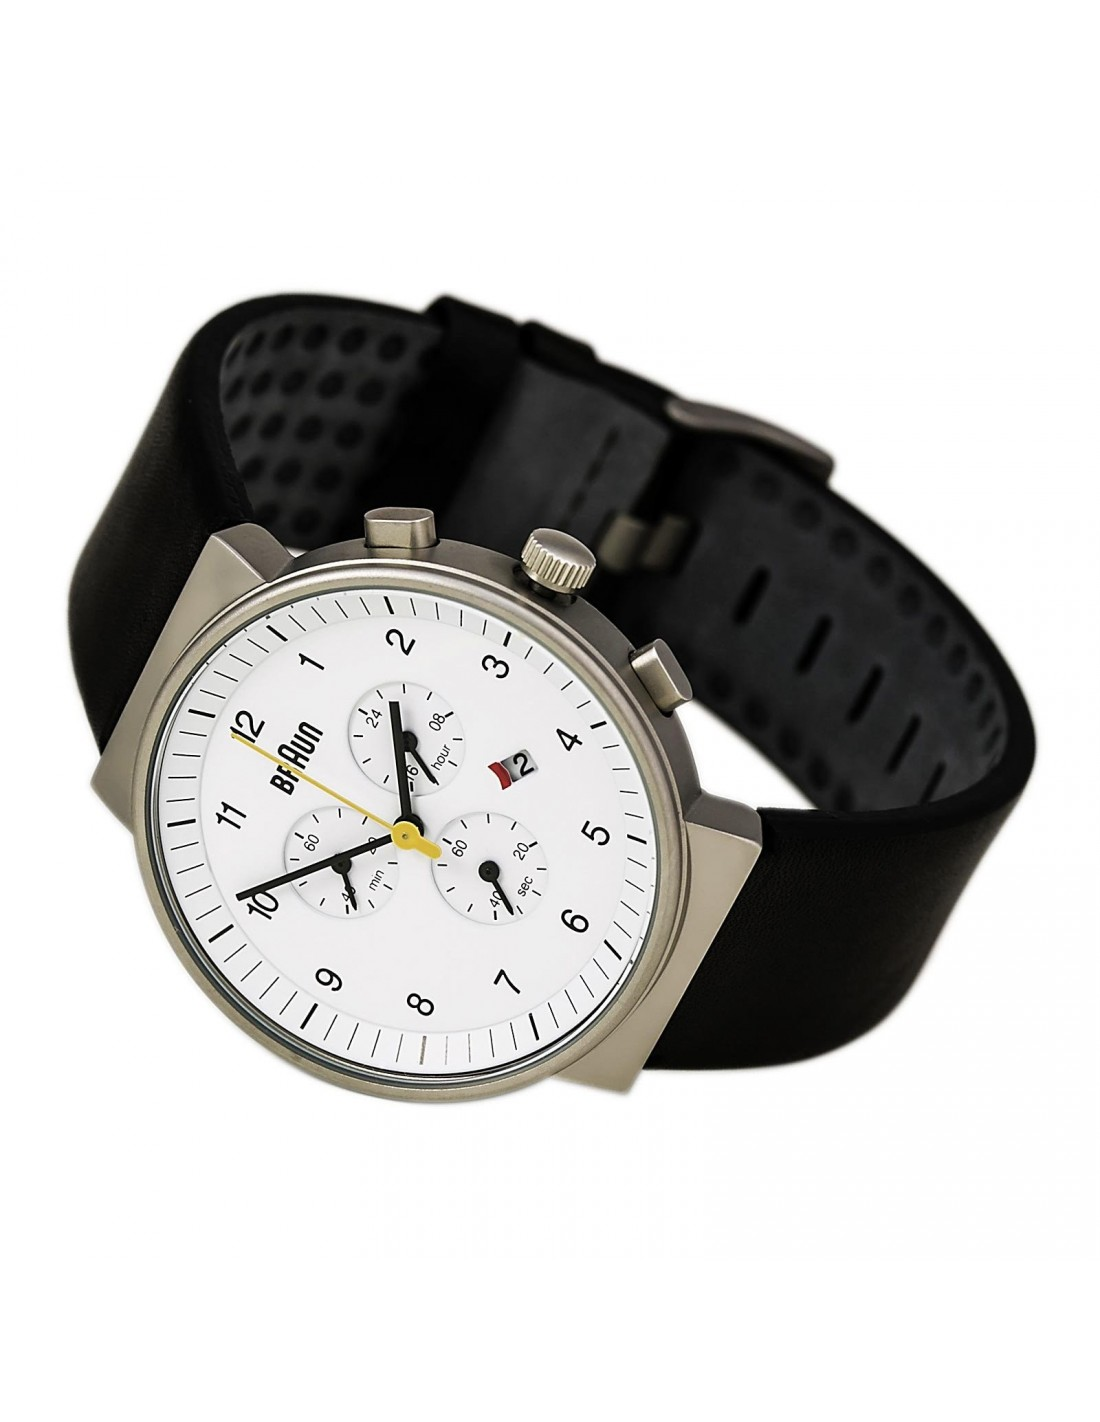 a5cd243078f2c Gents BN0035 Classic Chronograph Watch with Leather Strap